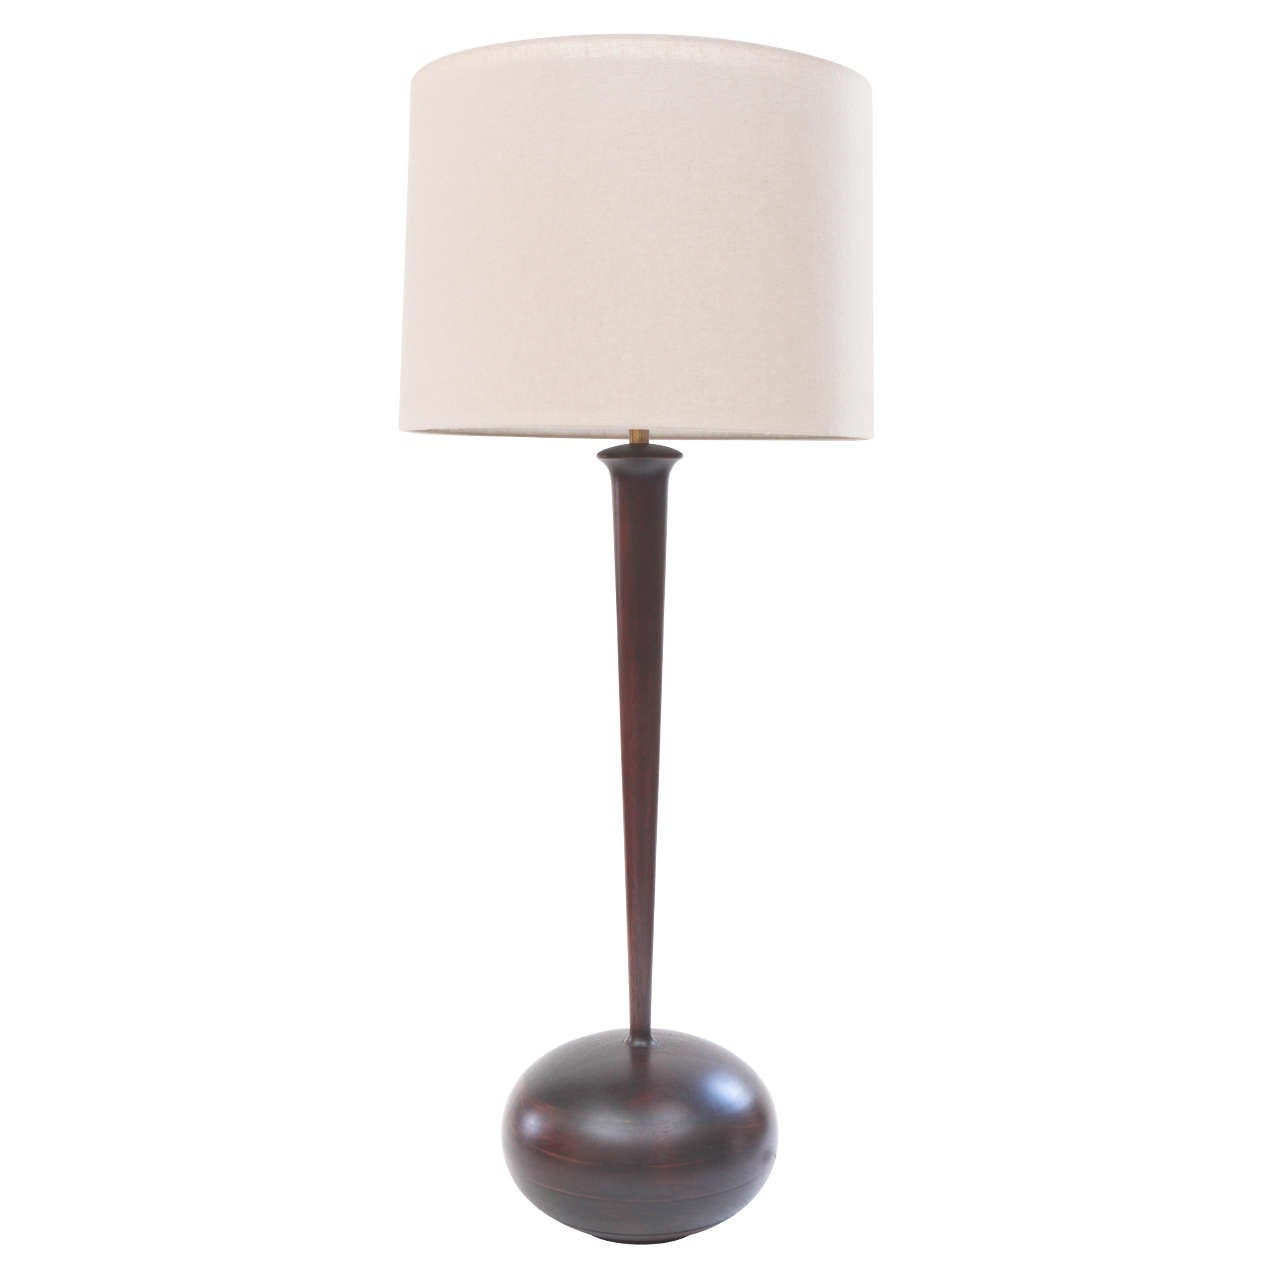 mid century wooden table lamp at 1stdibs. Black Bedroom Furniture Sets. Home Design Ideas